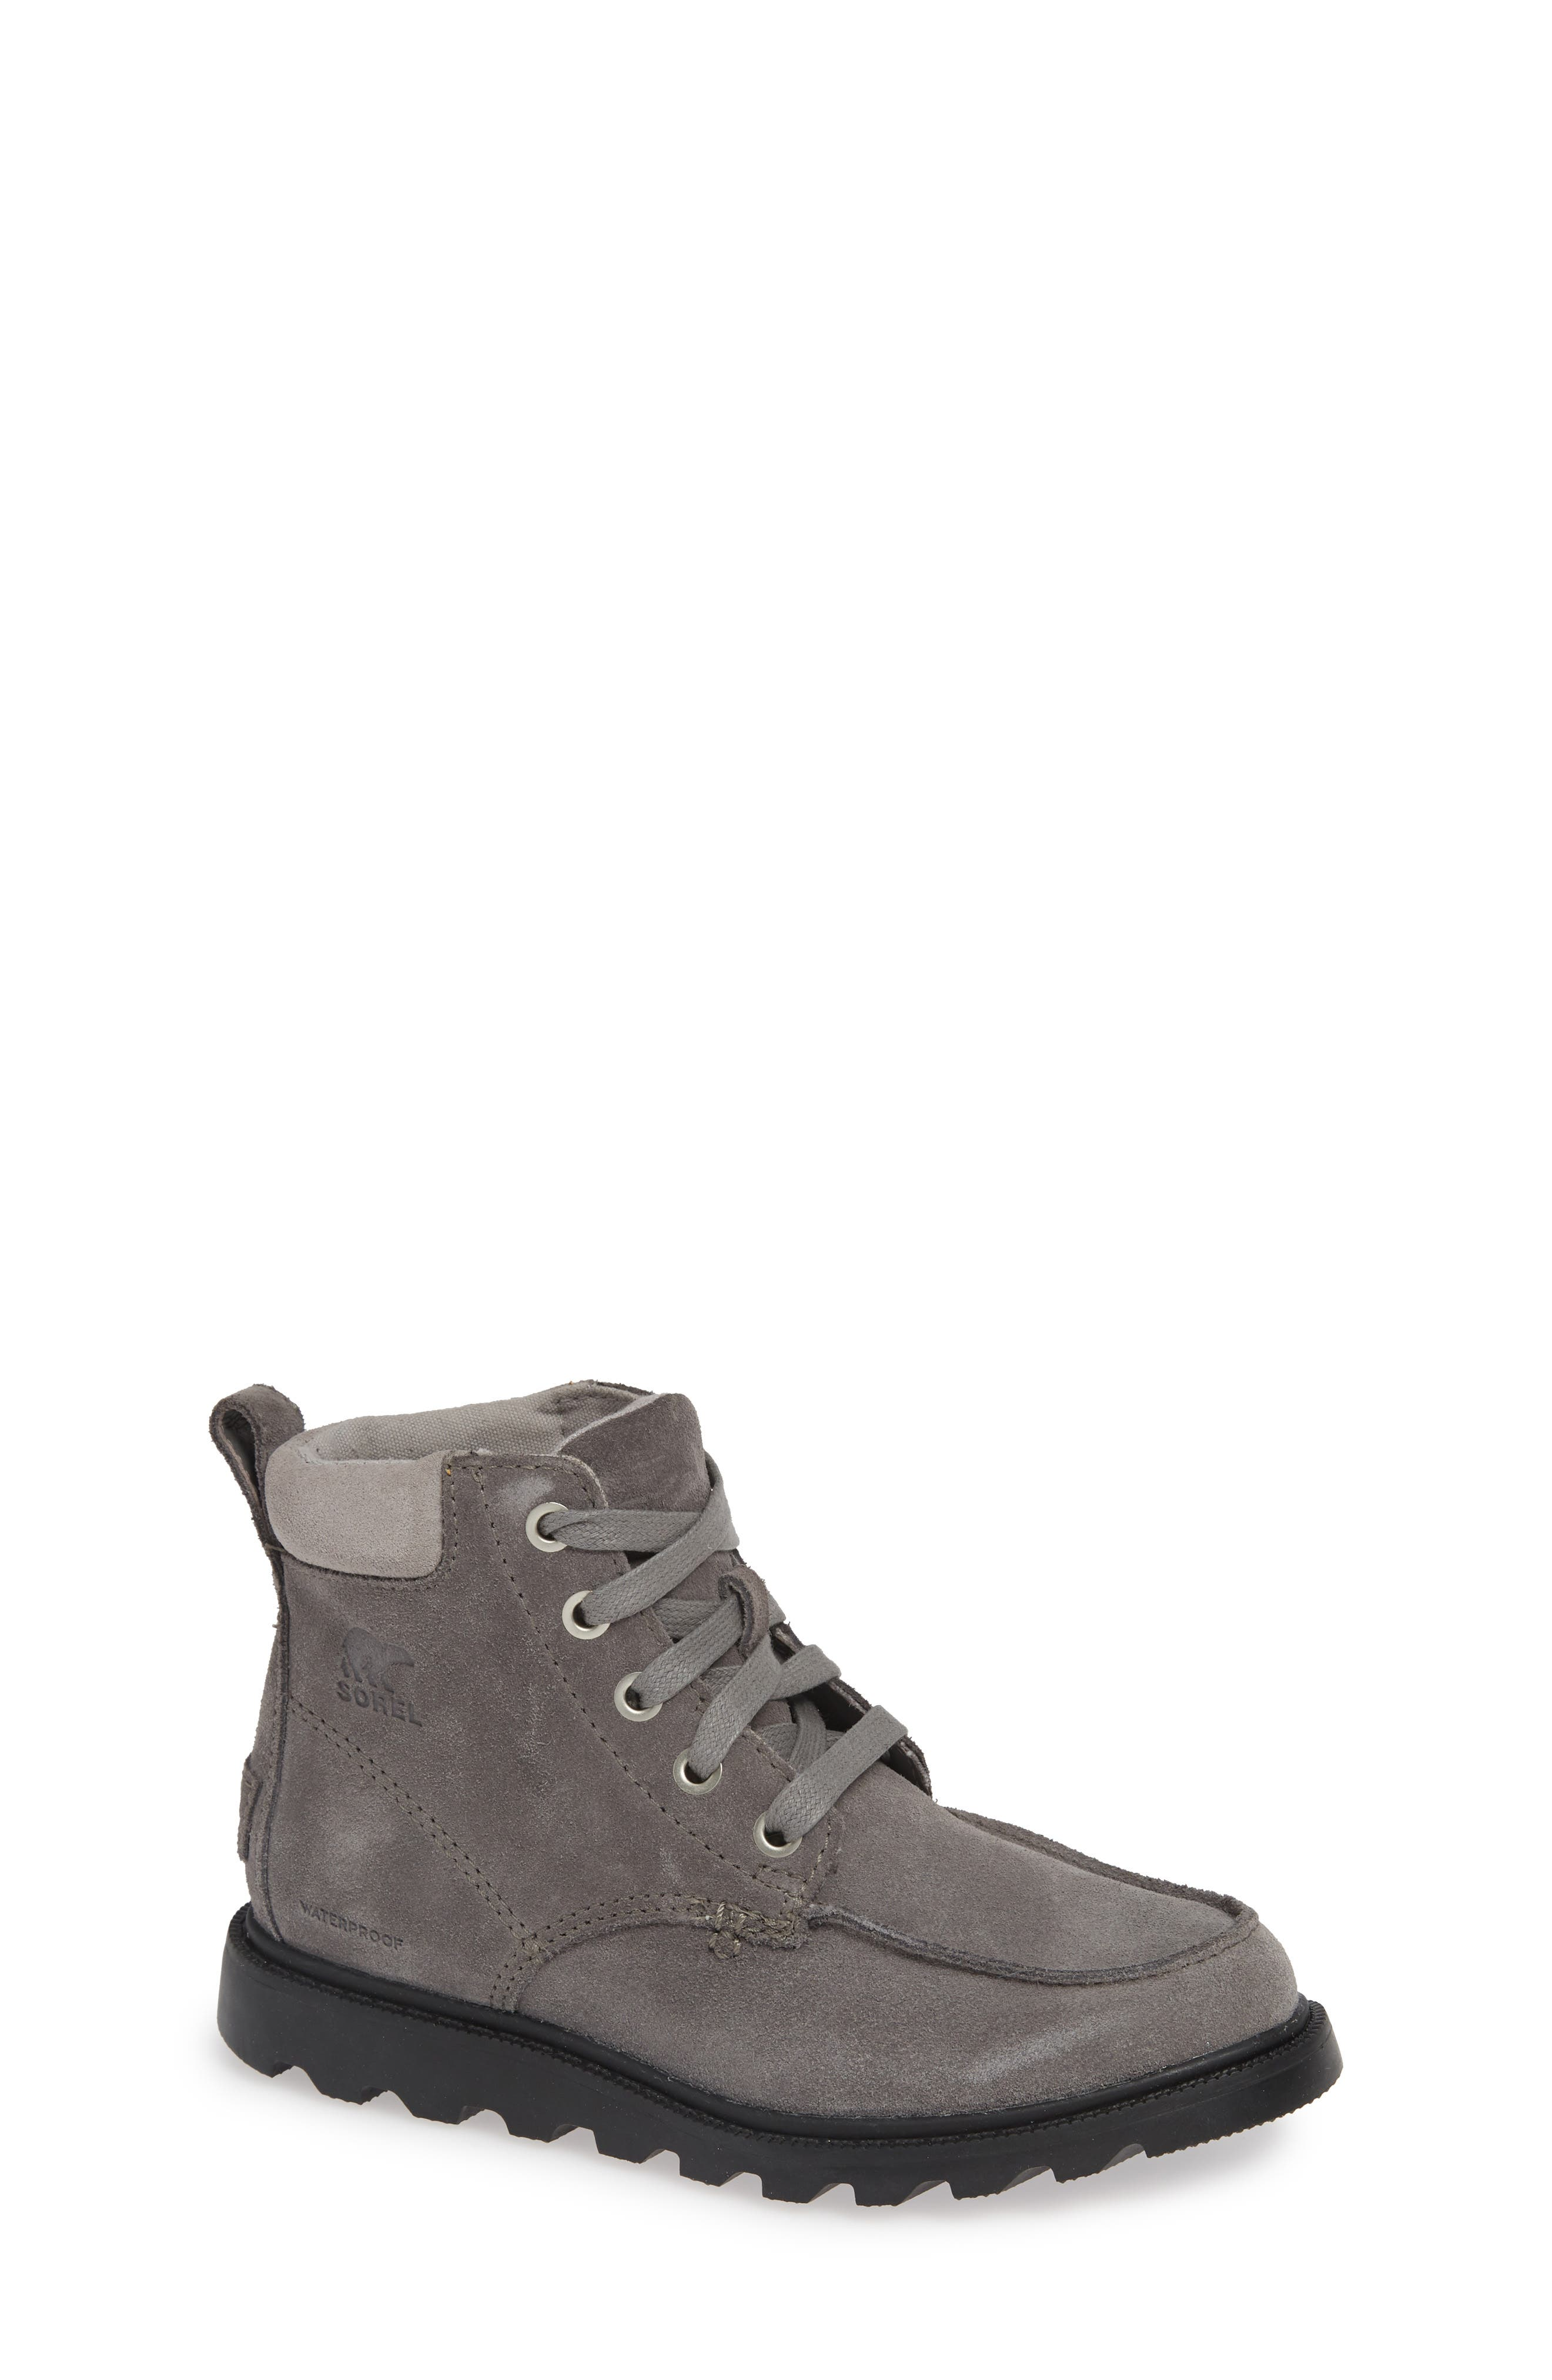 Madson Waterproof Moc Toe Boot,                         Main,                         color, QUARRY/ CHROME